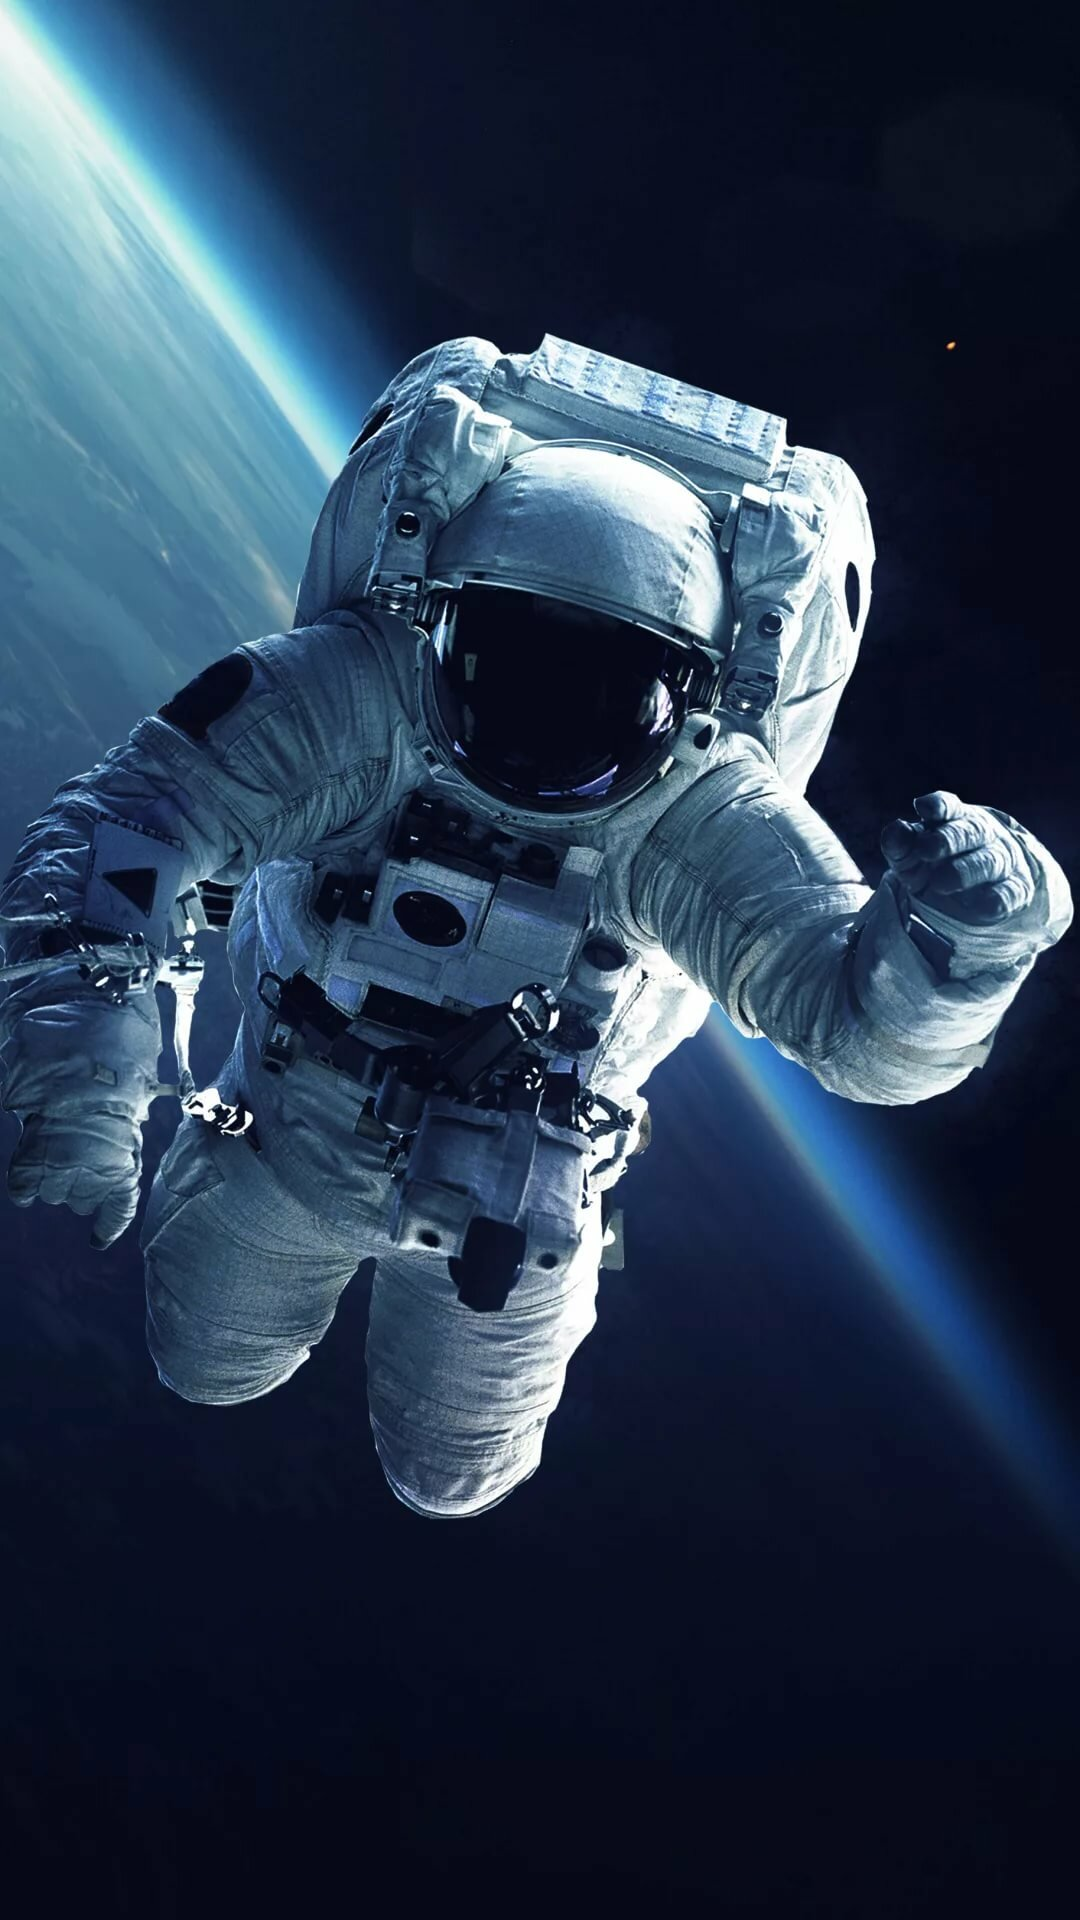 astronaut chilling in space - 736×1308